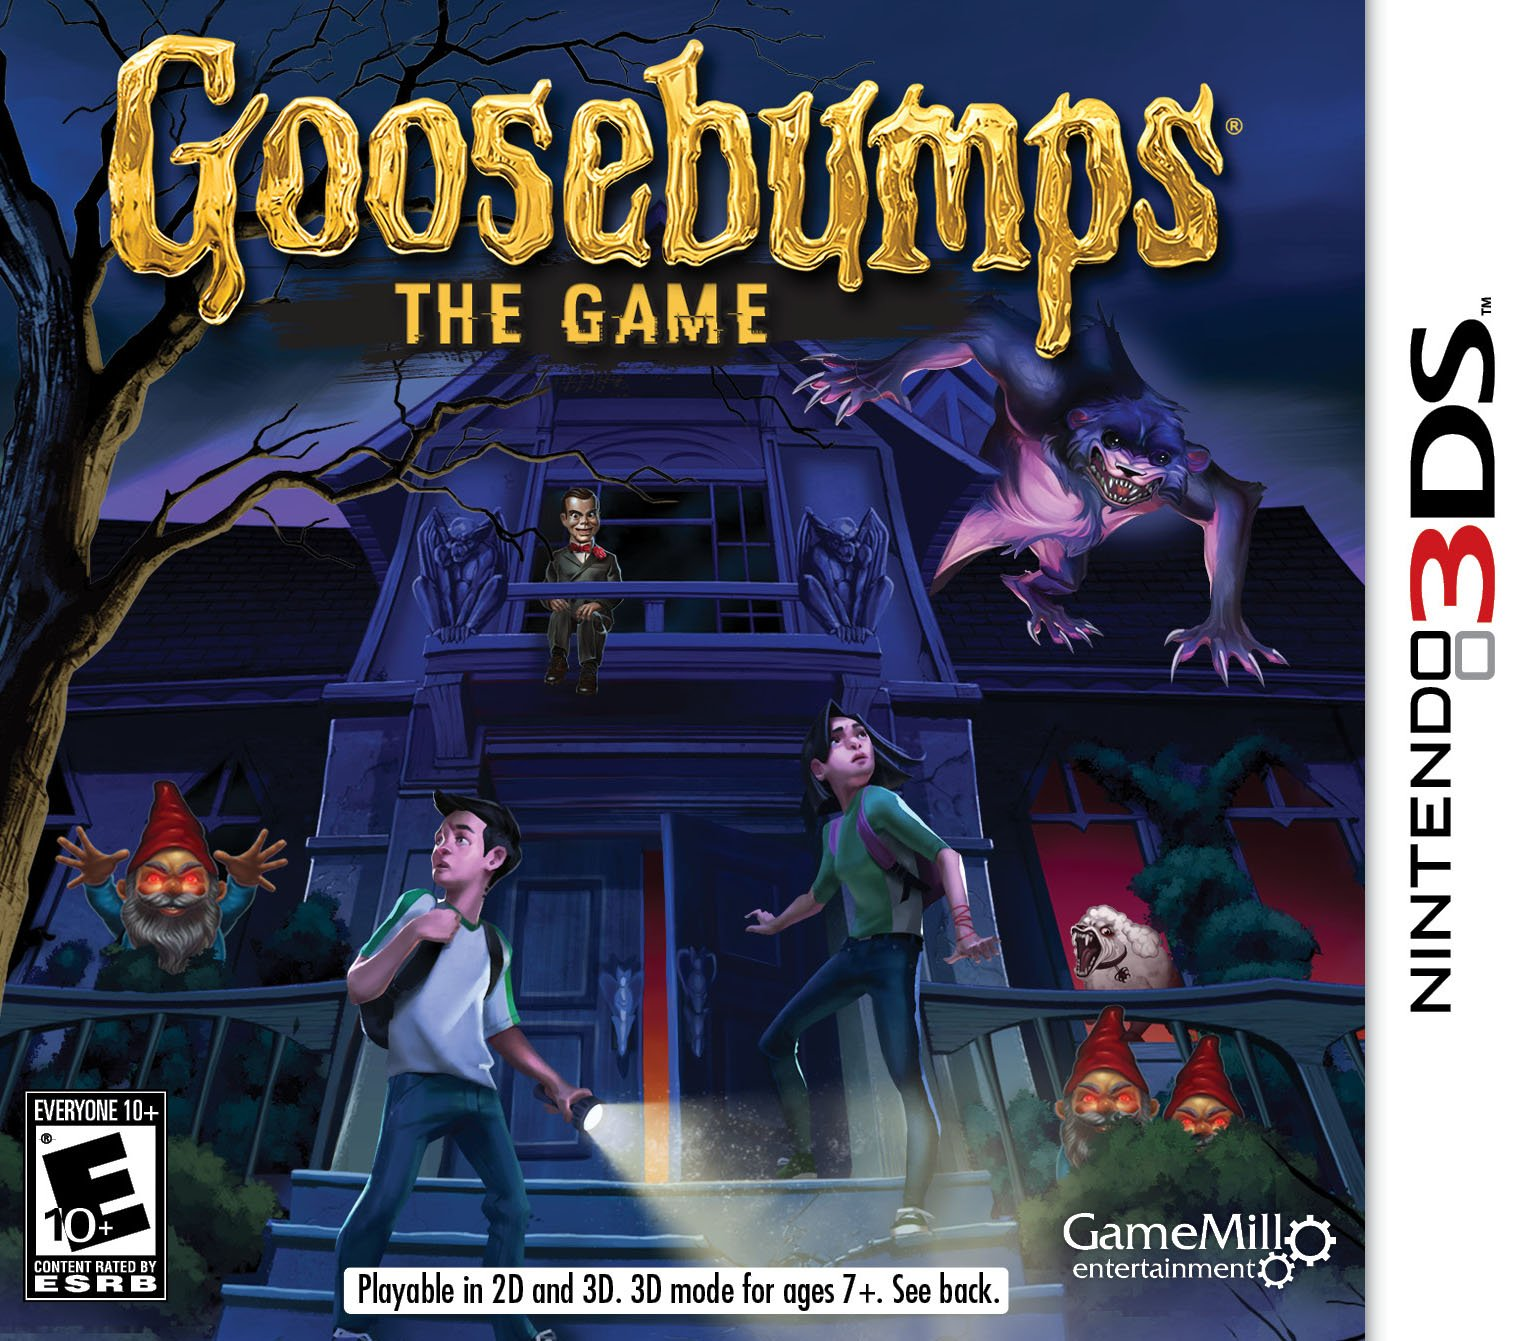 Goosebumps the Game 3DS - Nintendo 3DS